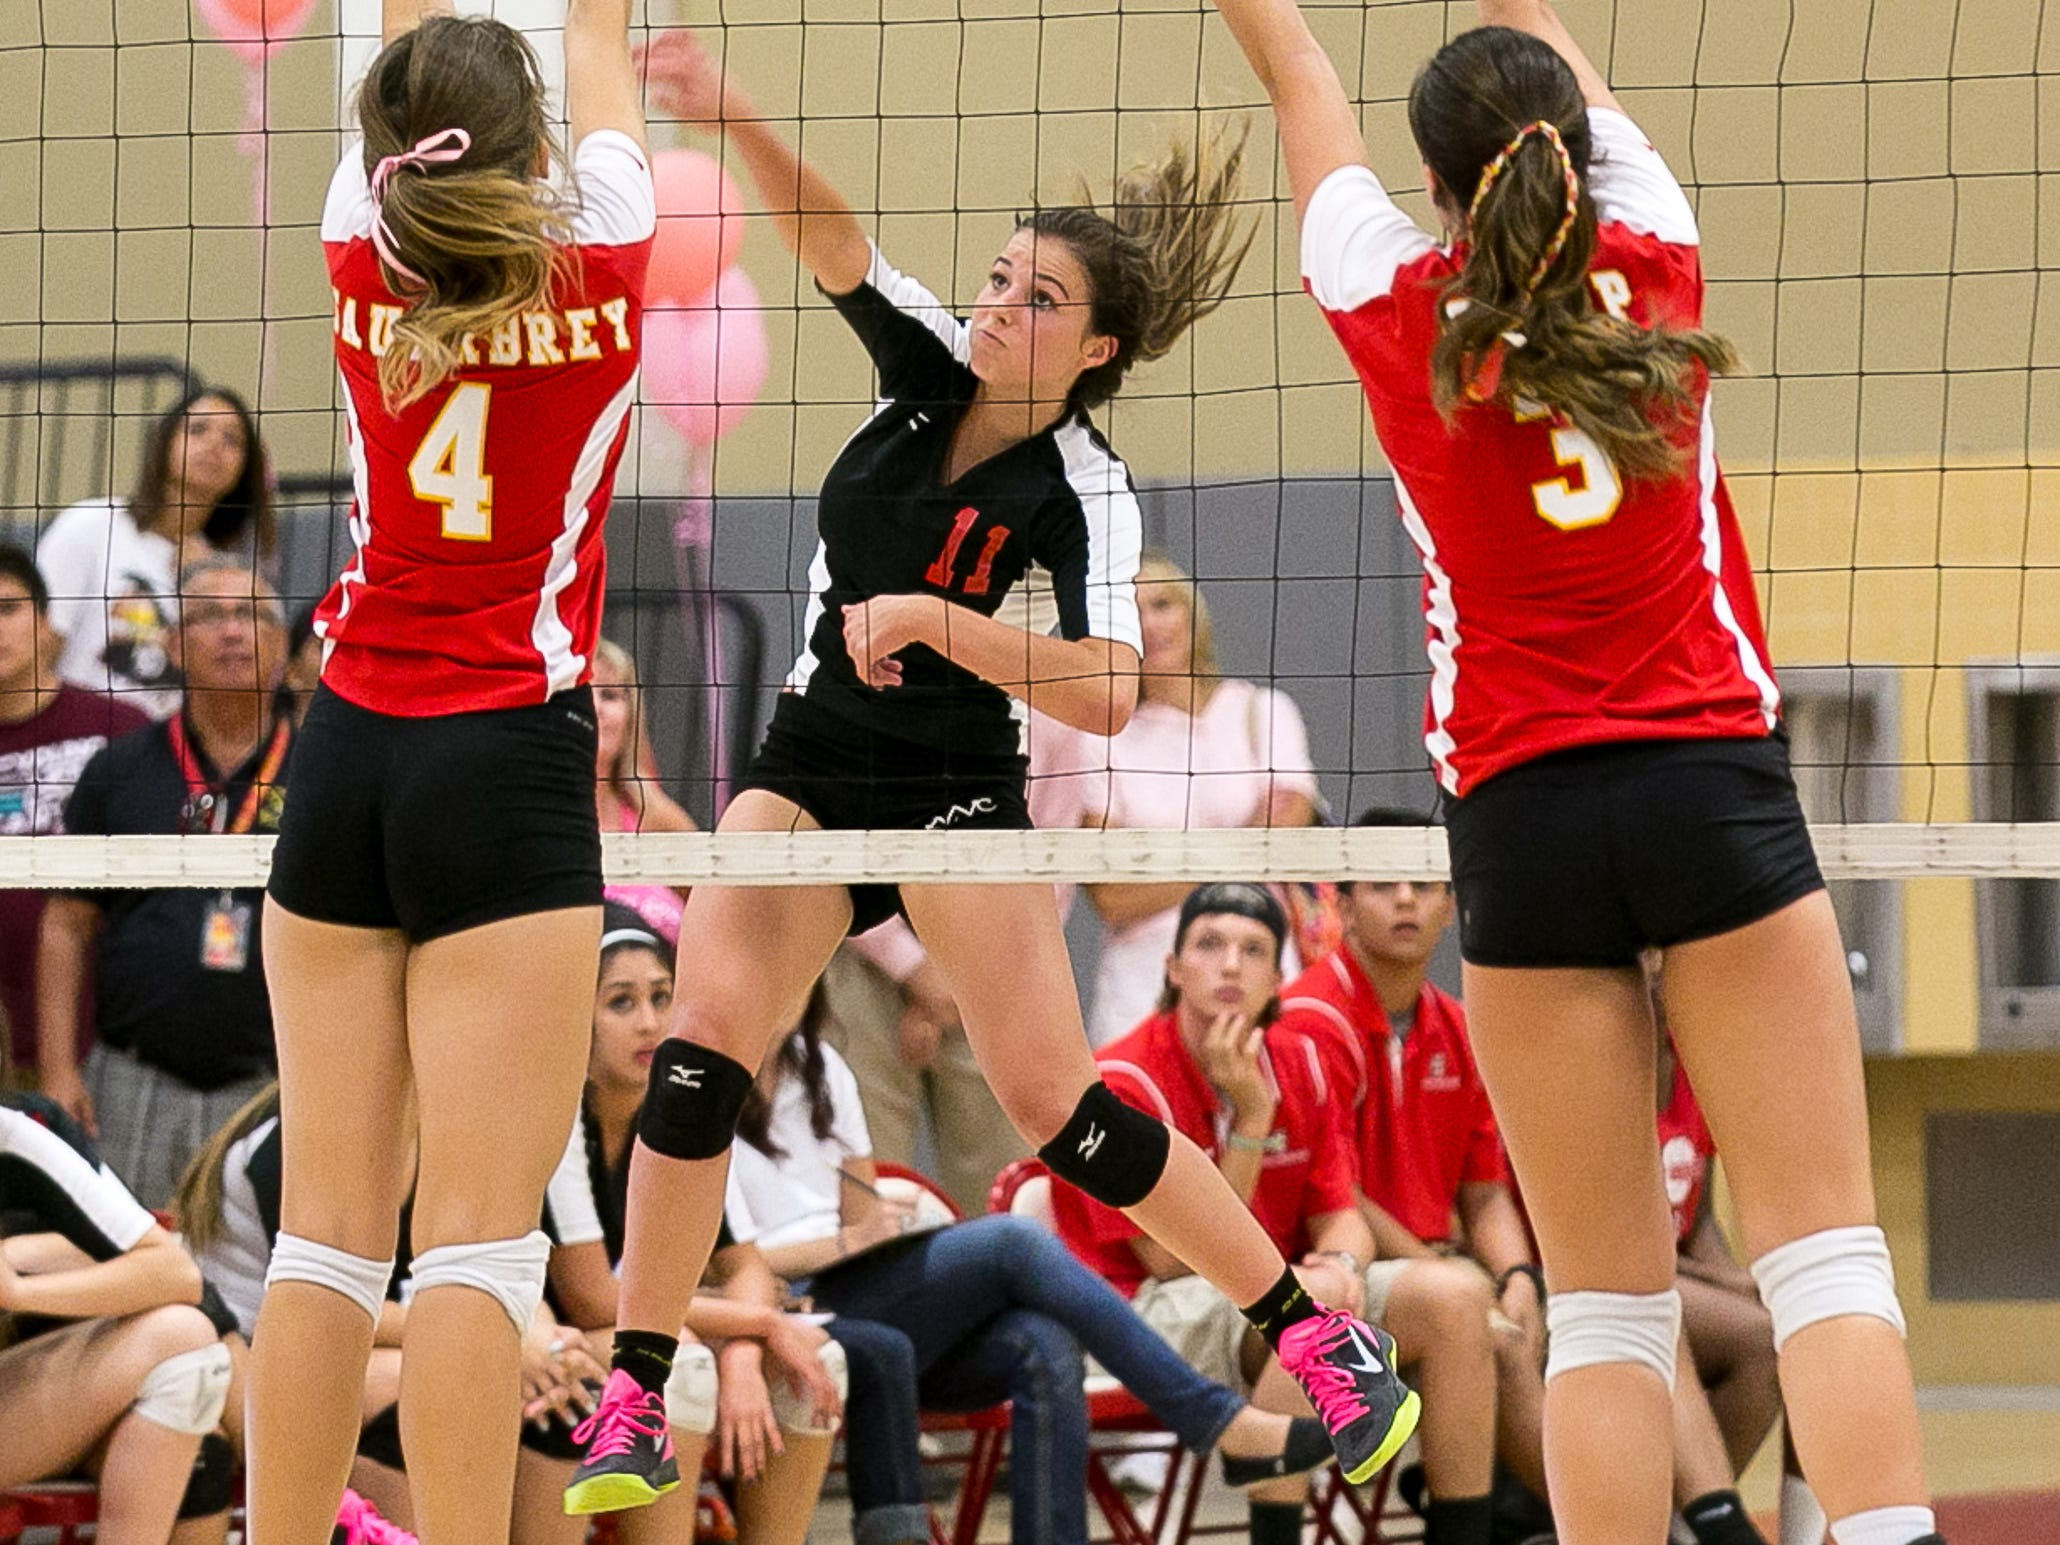 Palm Springs Mary Lake (No. 11) hits the ball against Palm Desert in a DVL volleyball game held at Palm Desert High School Thursday evening, October 16, 2014. Photo by Gerry Maceda, Special to The Desert Sun